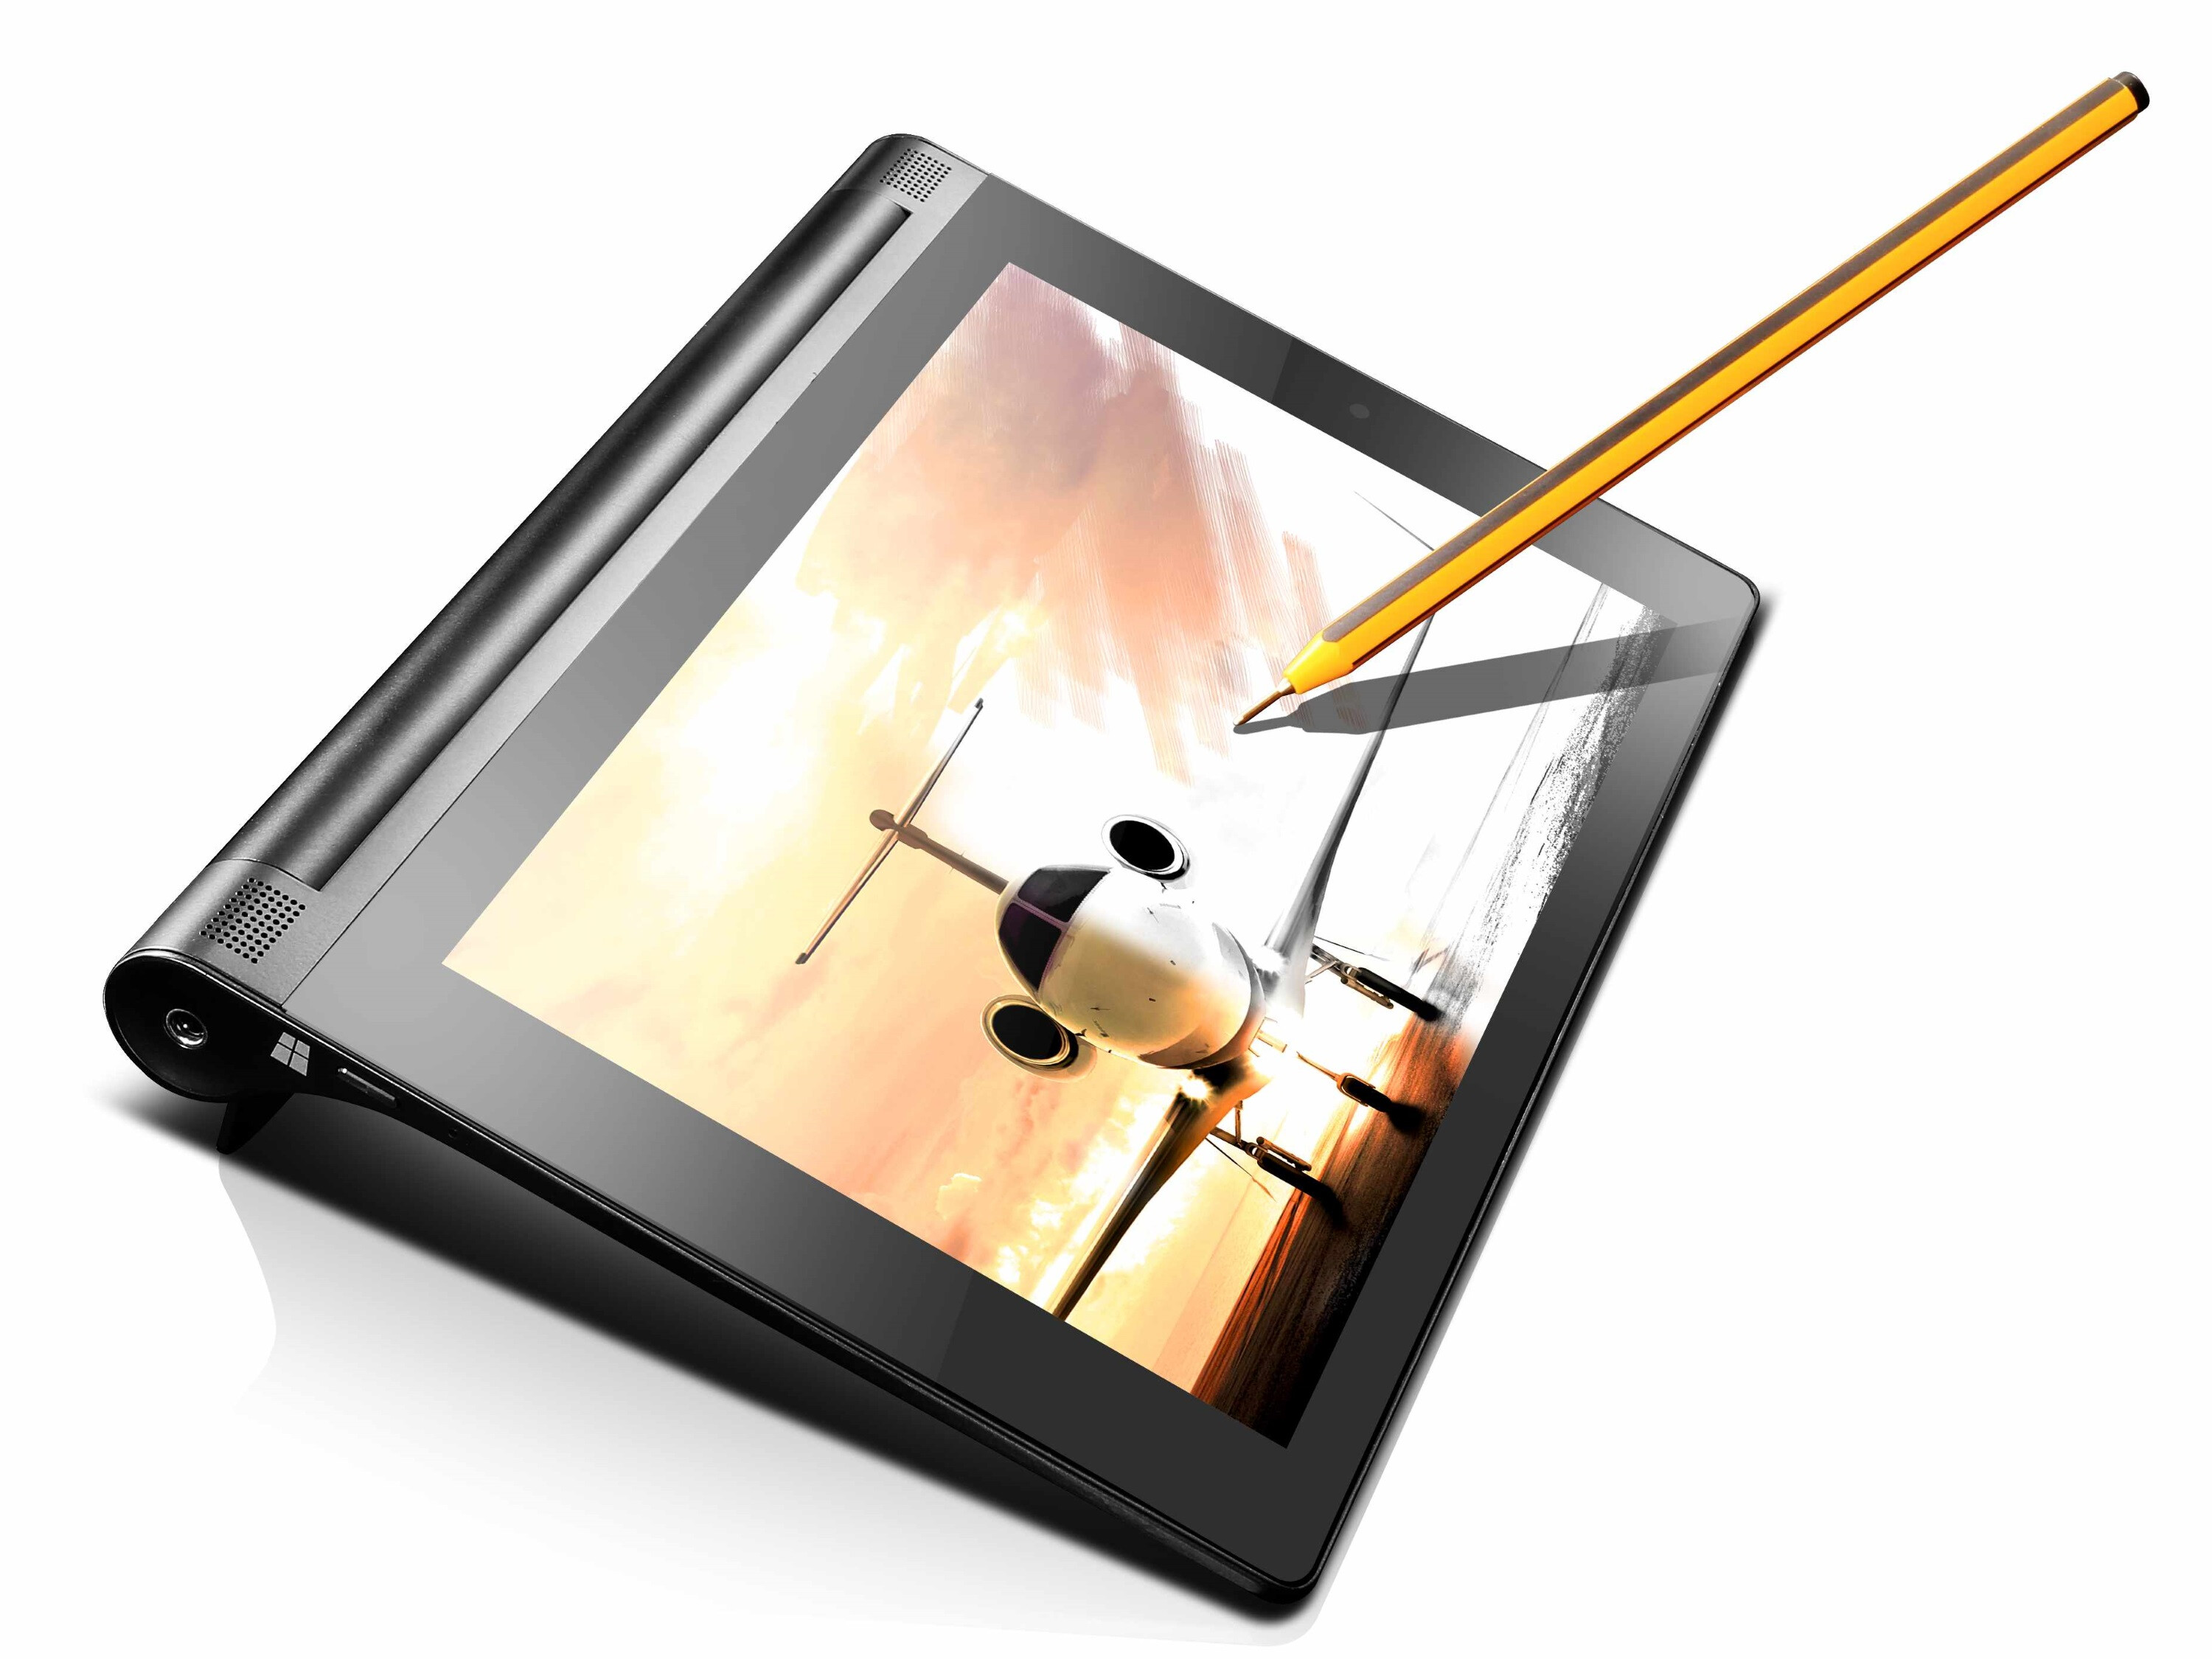 The lenovo yoga tablet 2 8 windows with anypen has a unique superpower